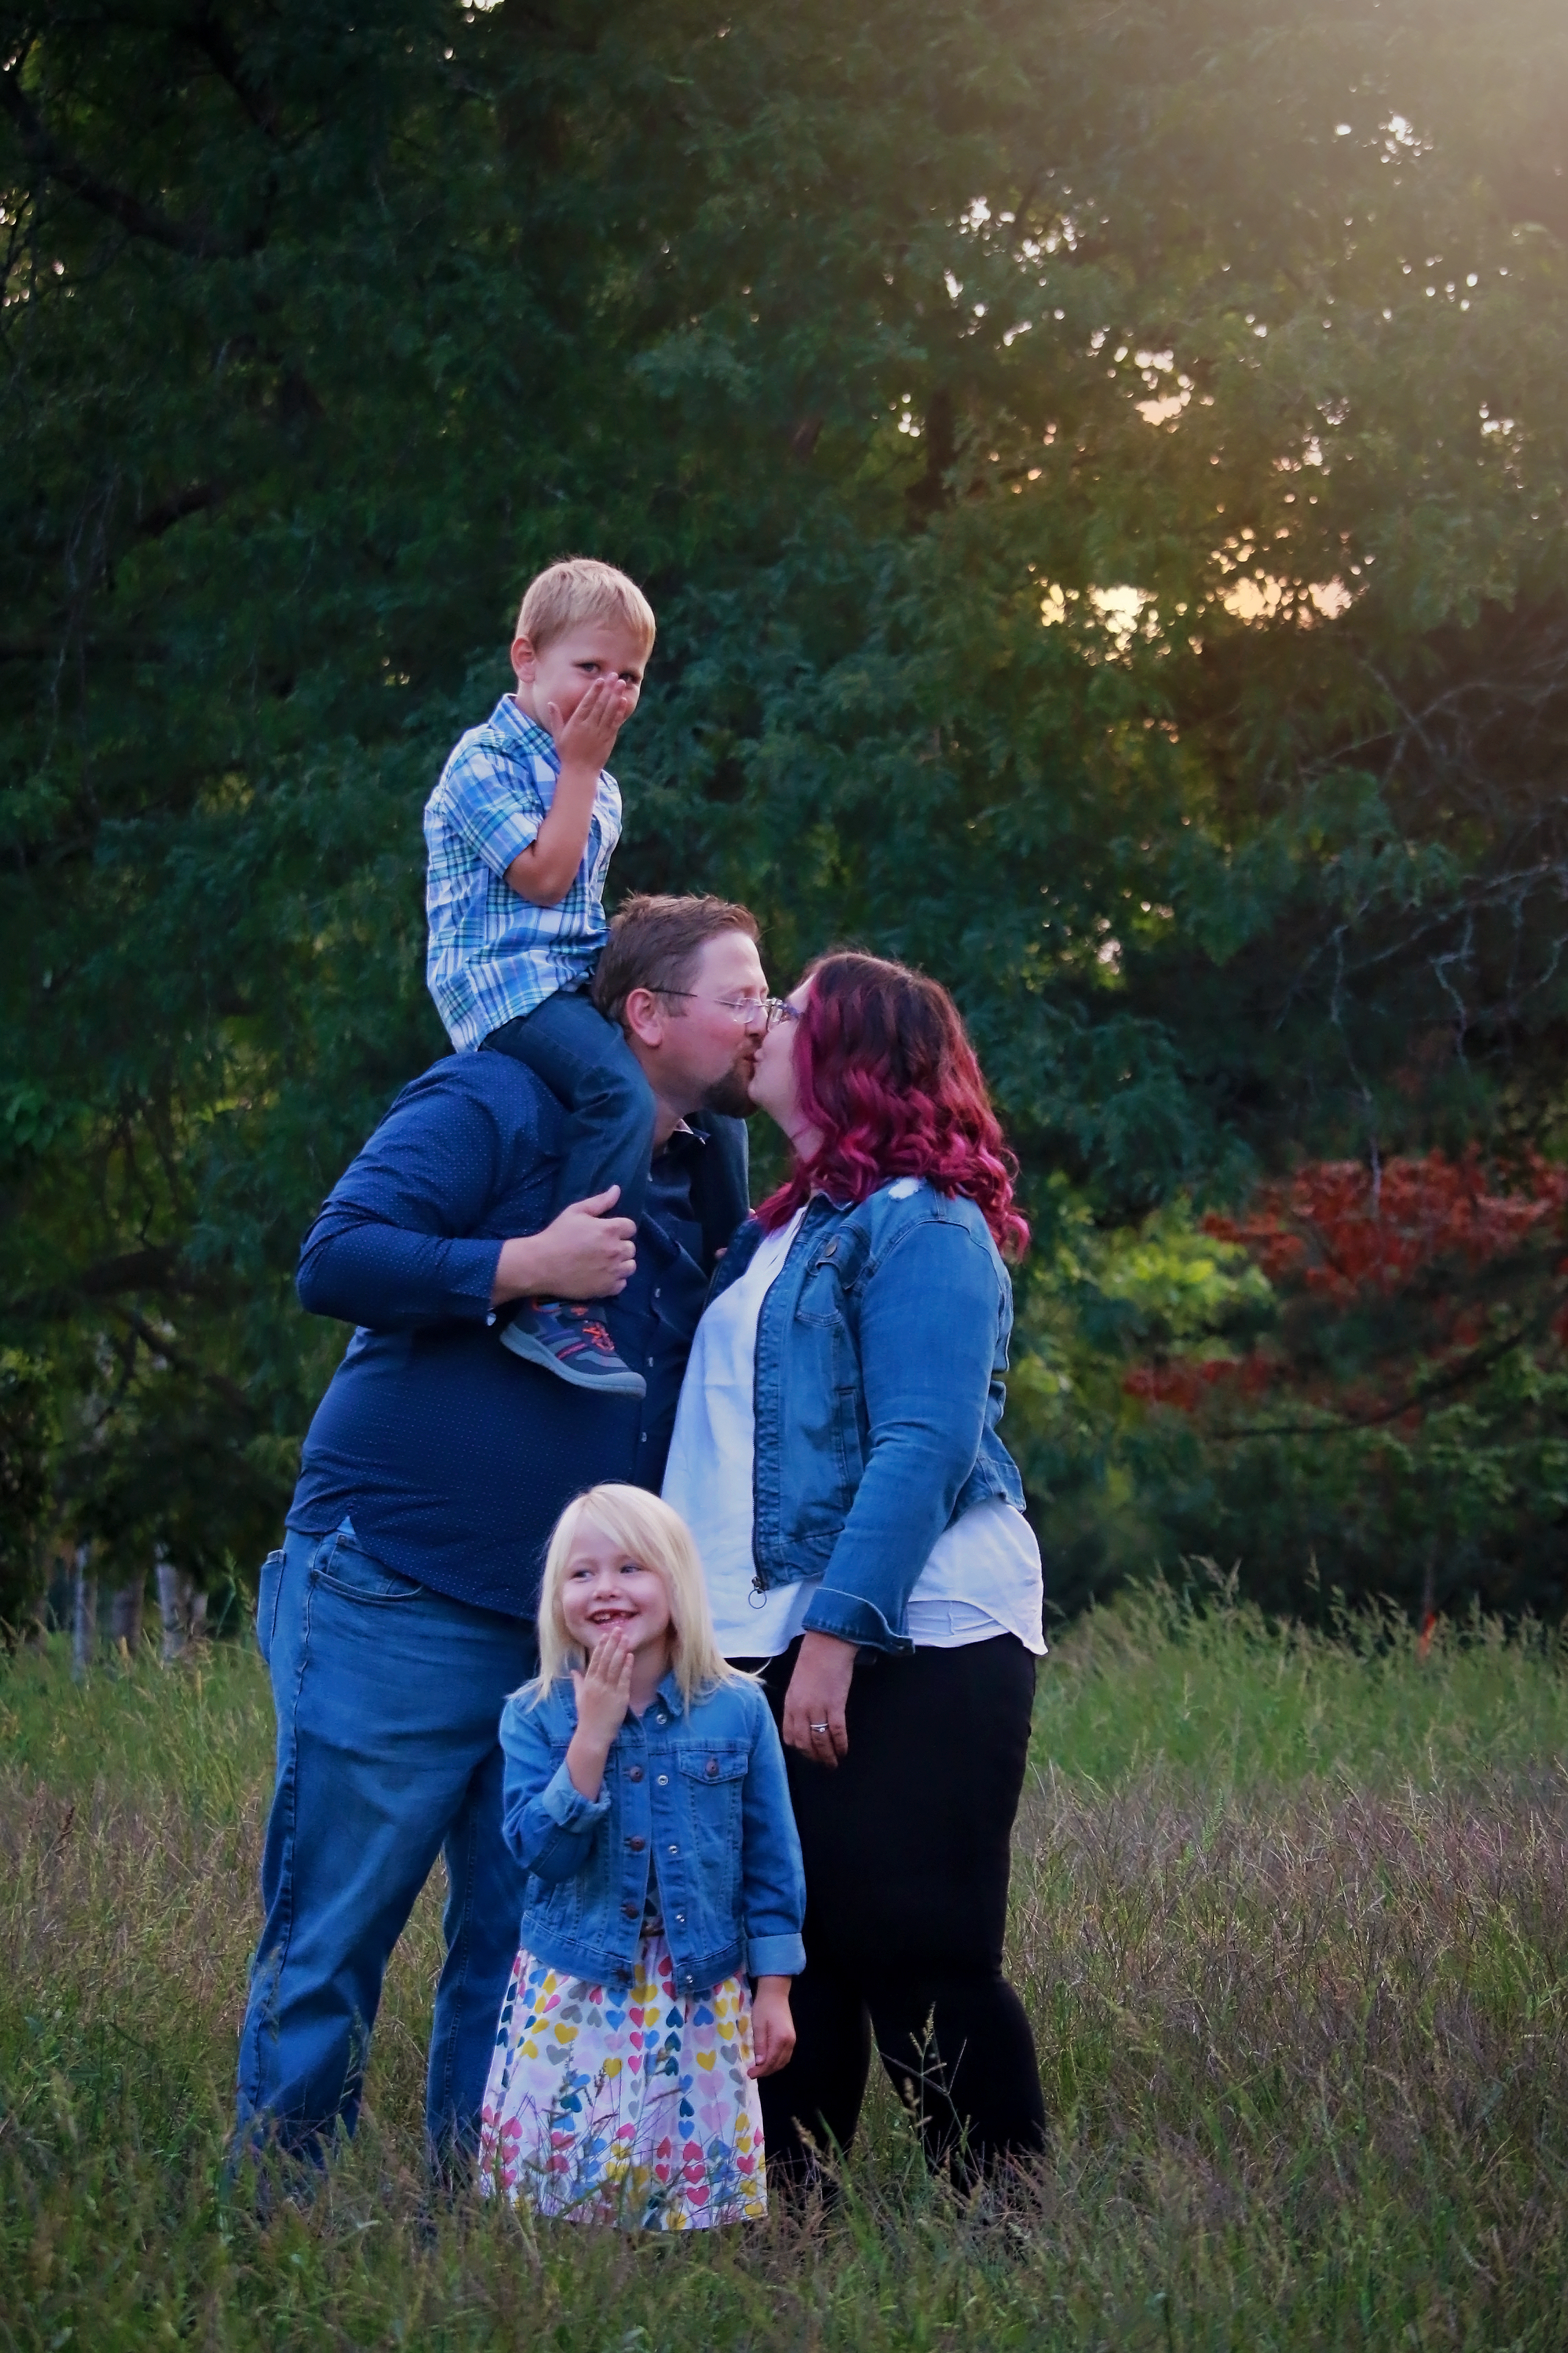 Niagara family portrait photography